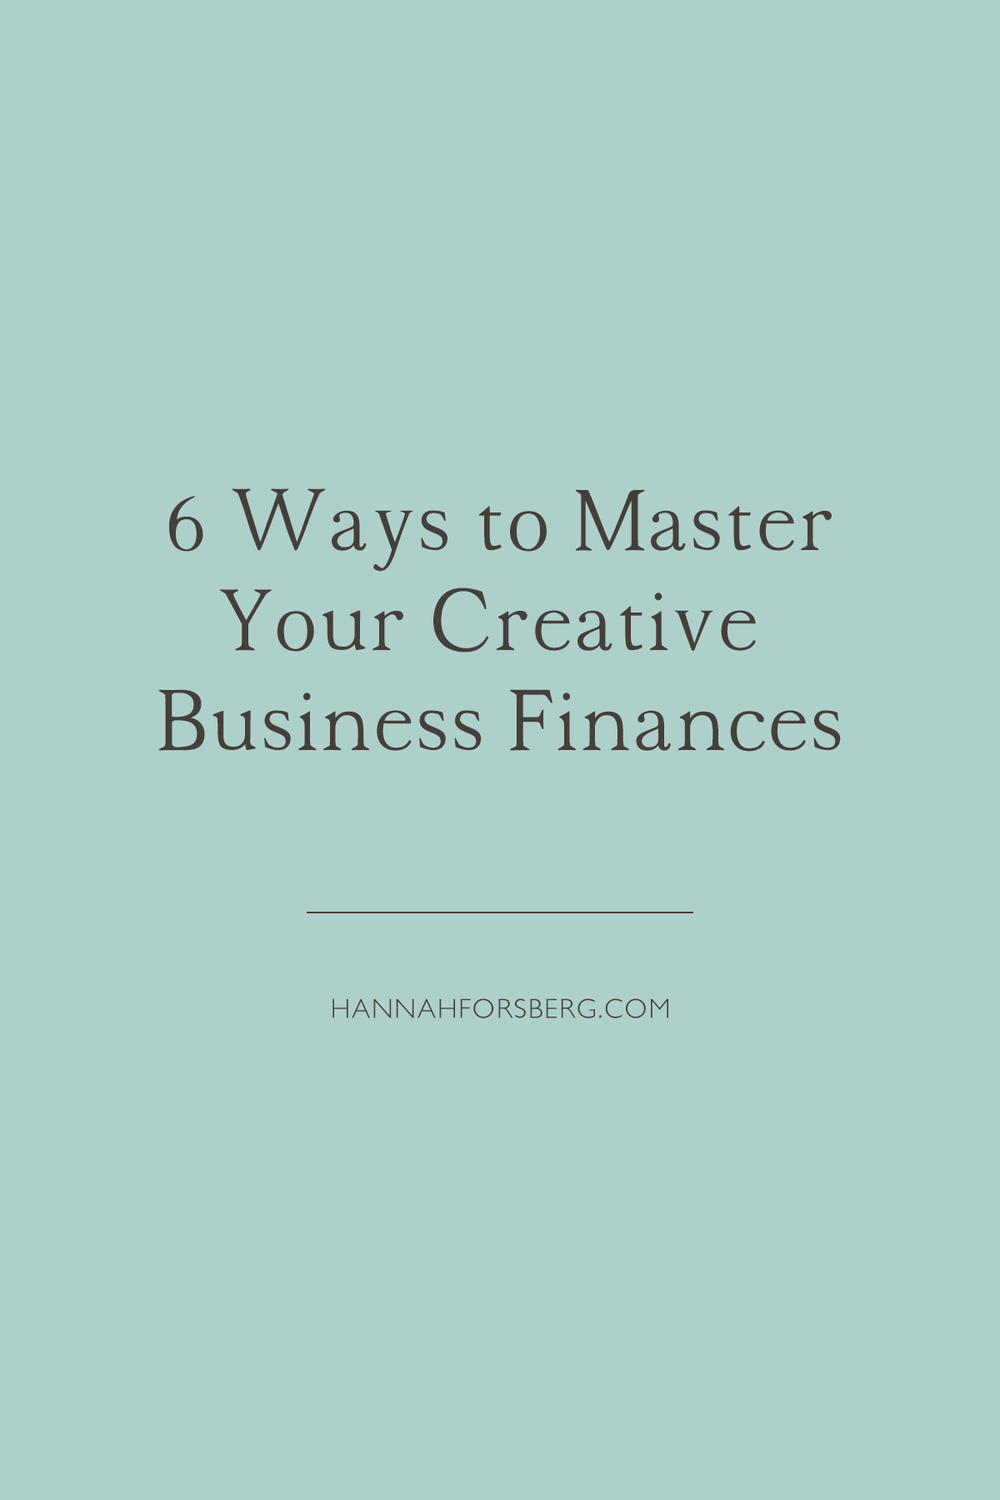 6 ways to master your creative business finances quickbooks hannah forsberg atlanta wedding photographer.png